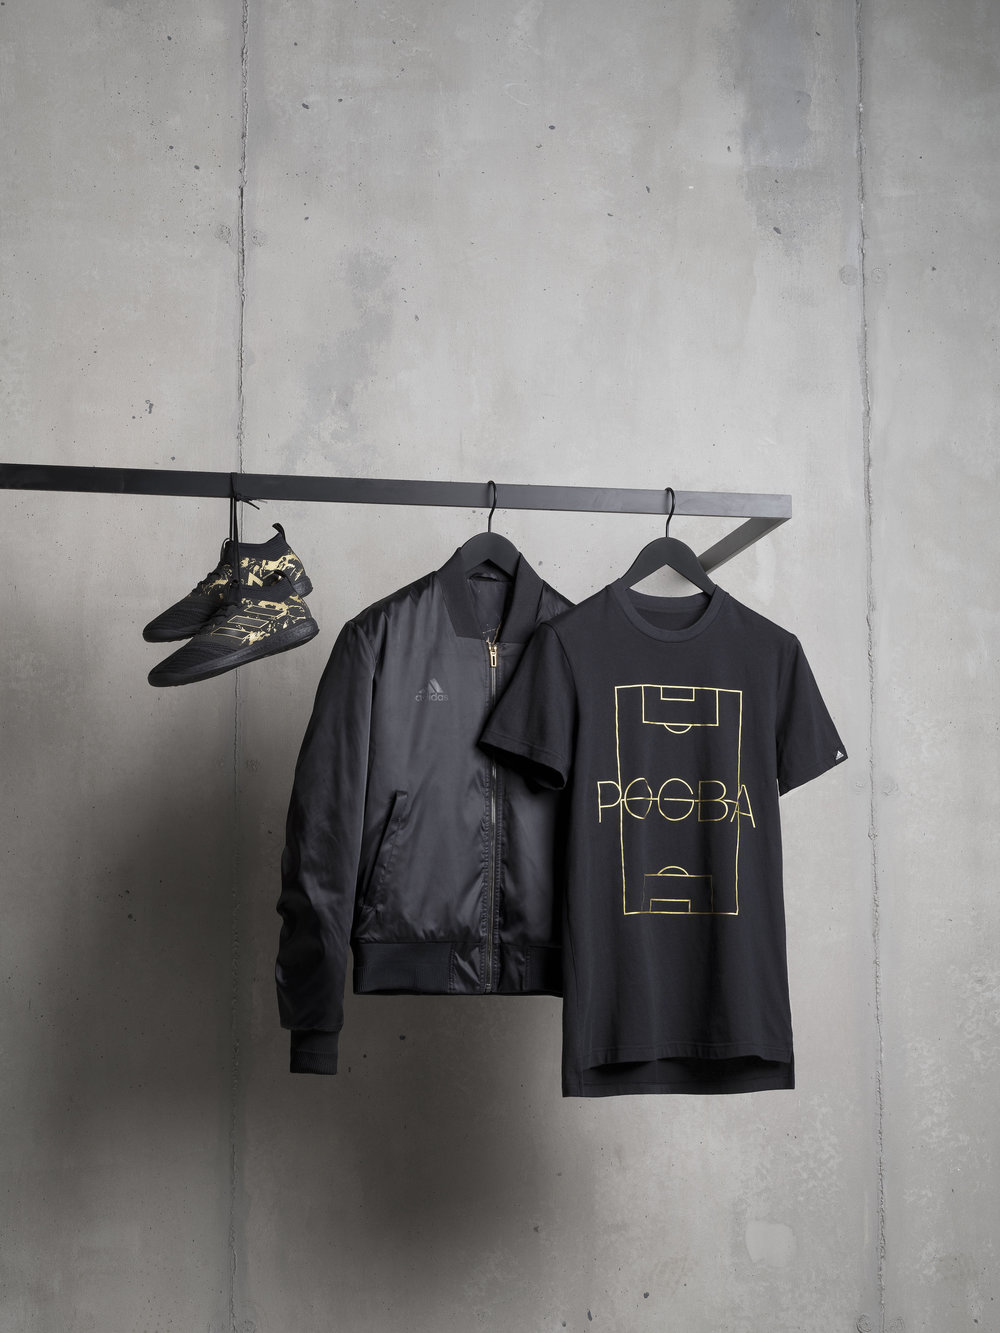 street-bomber_jacket-graphic_tee_Option3-0287656hero copy.jpg